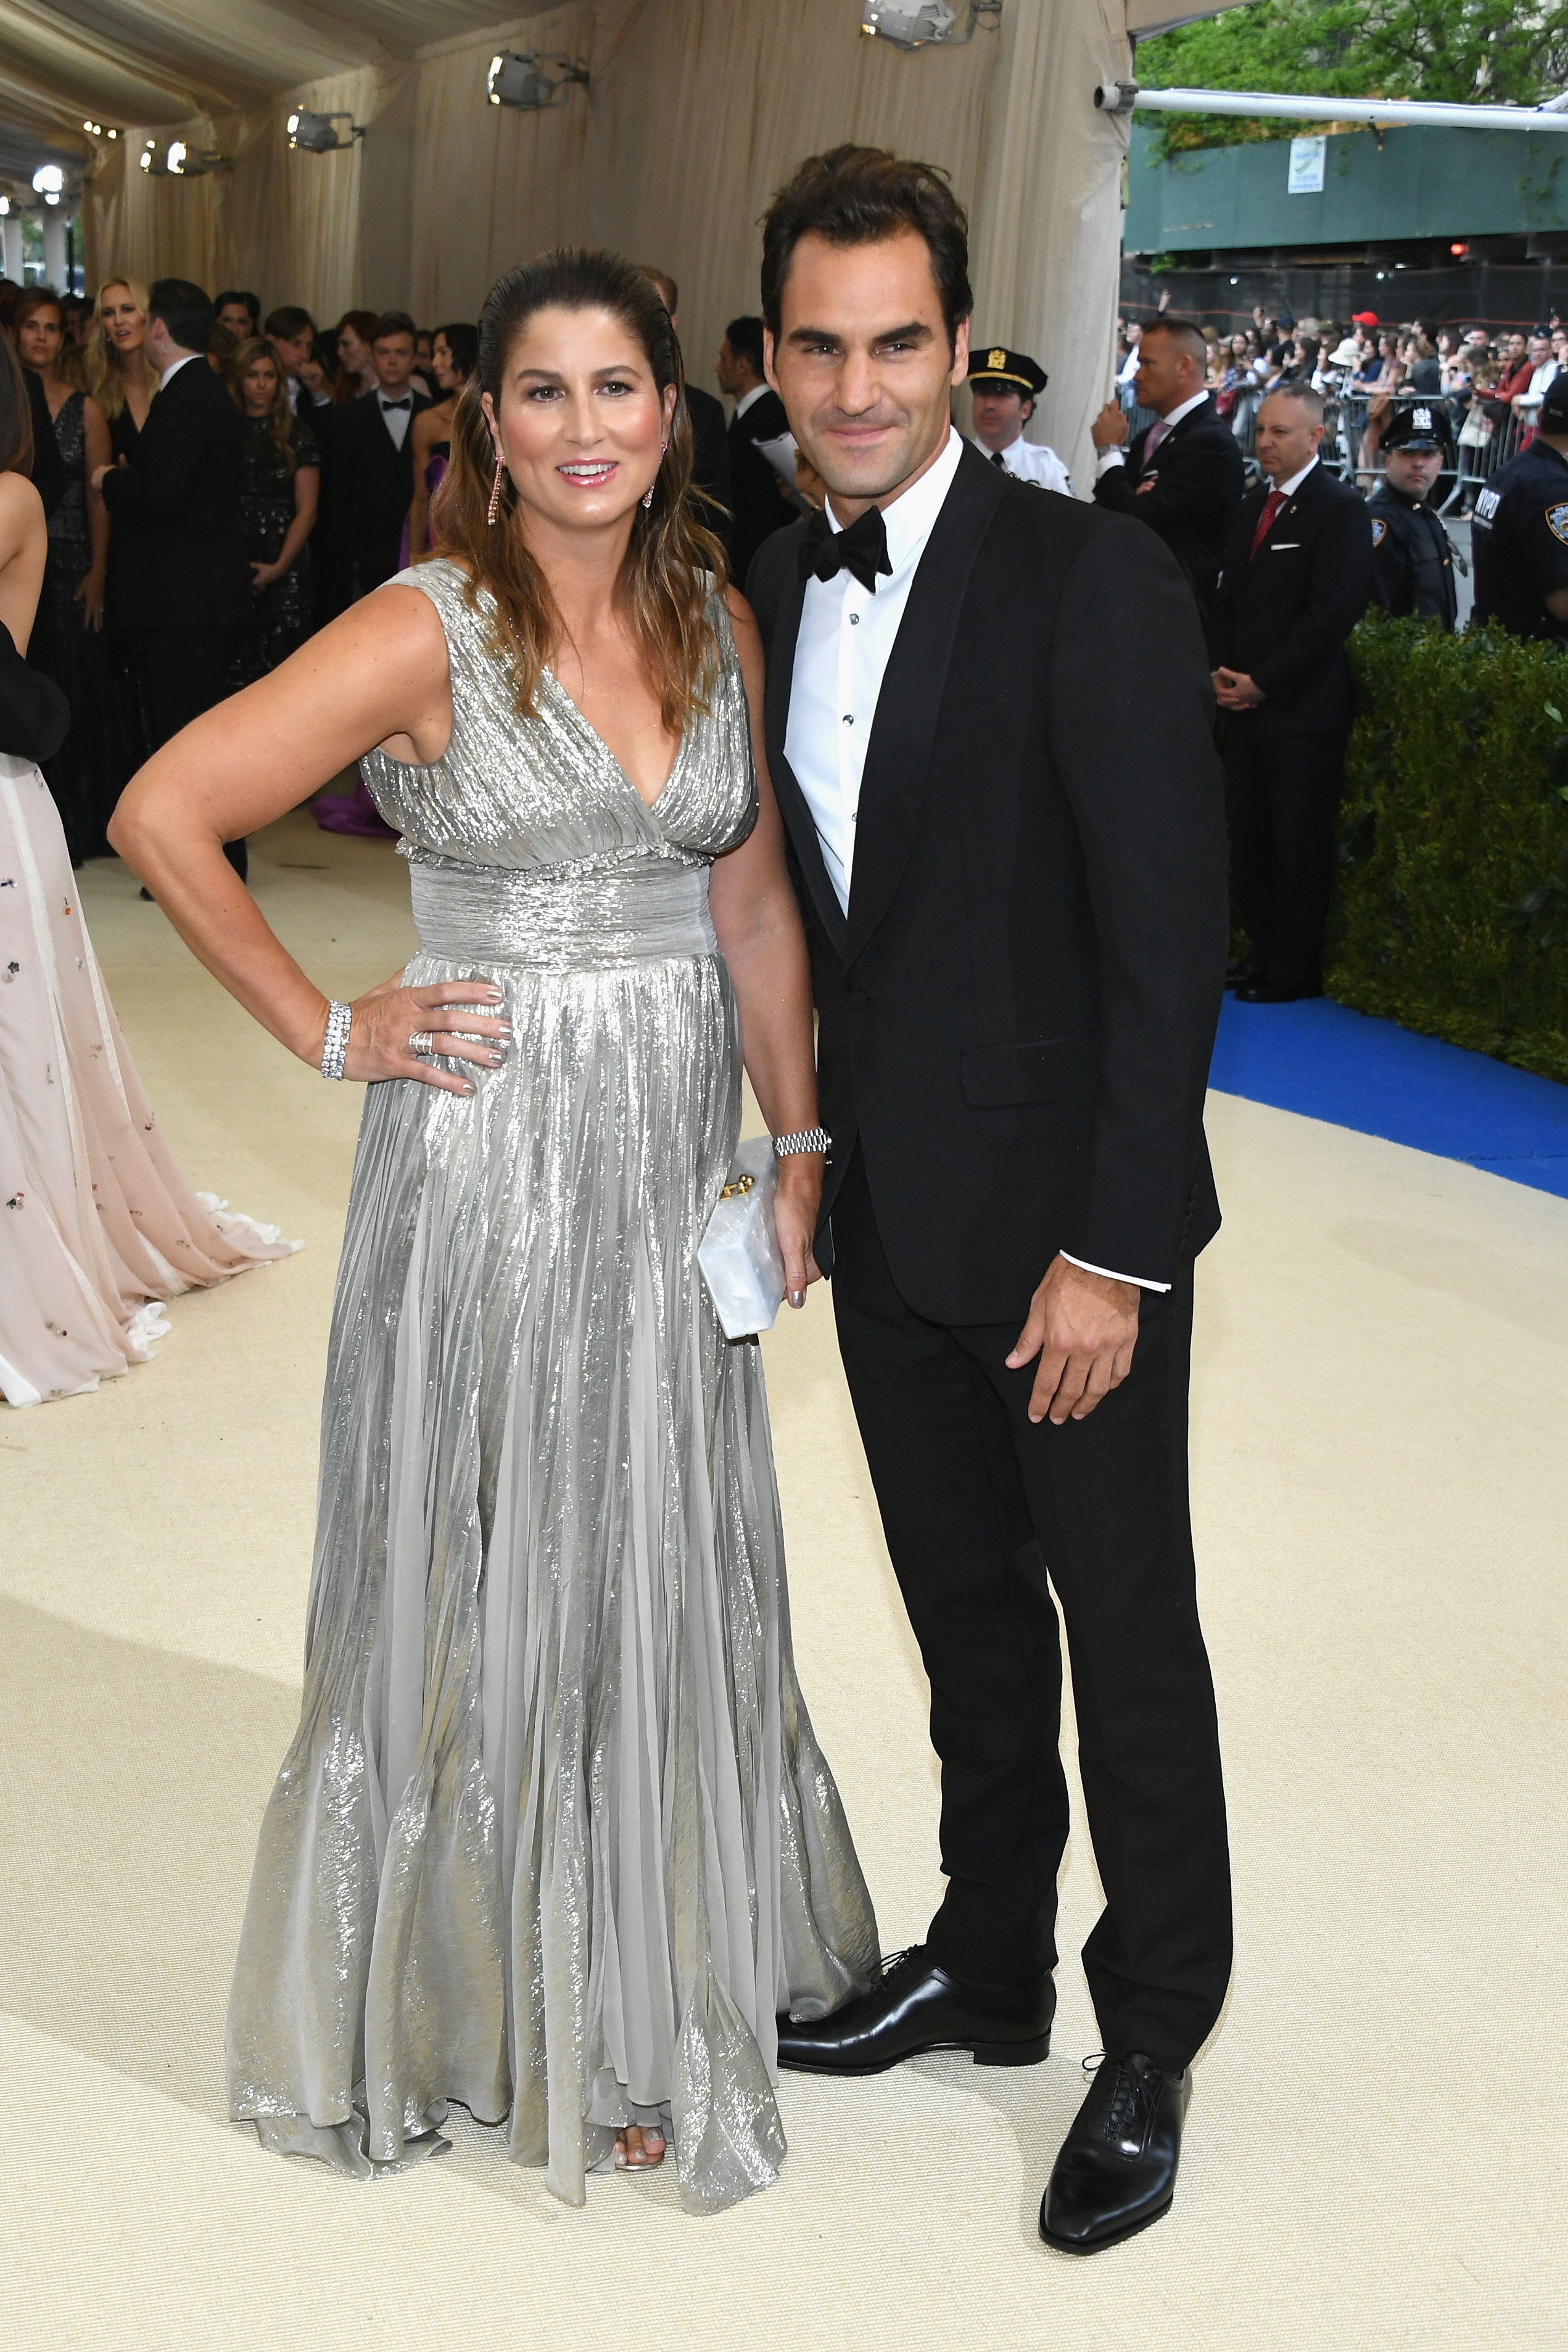 Roger Federer insists on sharing his bed with wife Mirka. (Image Source: Getty Images)